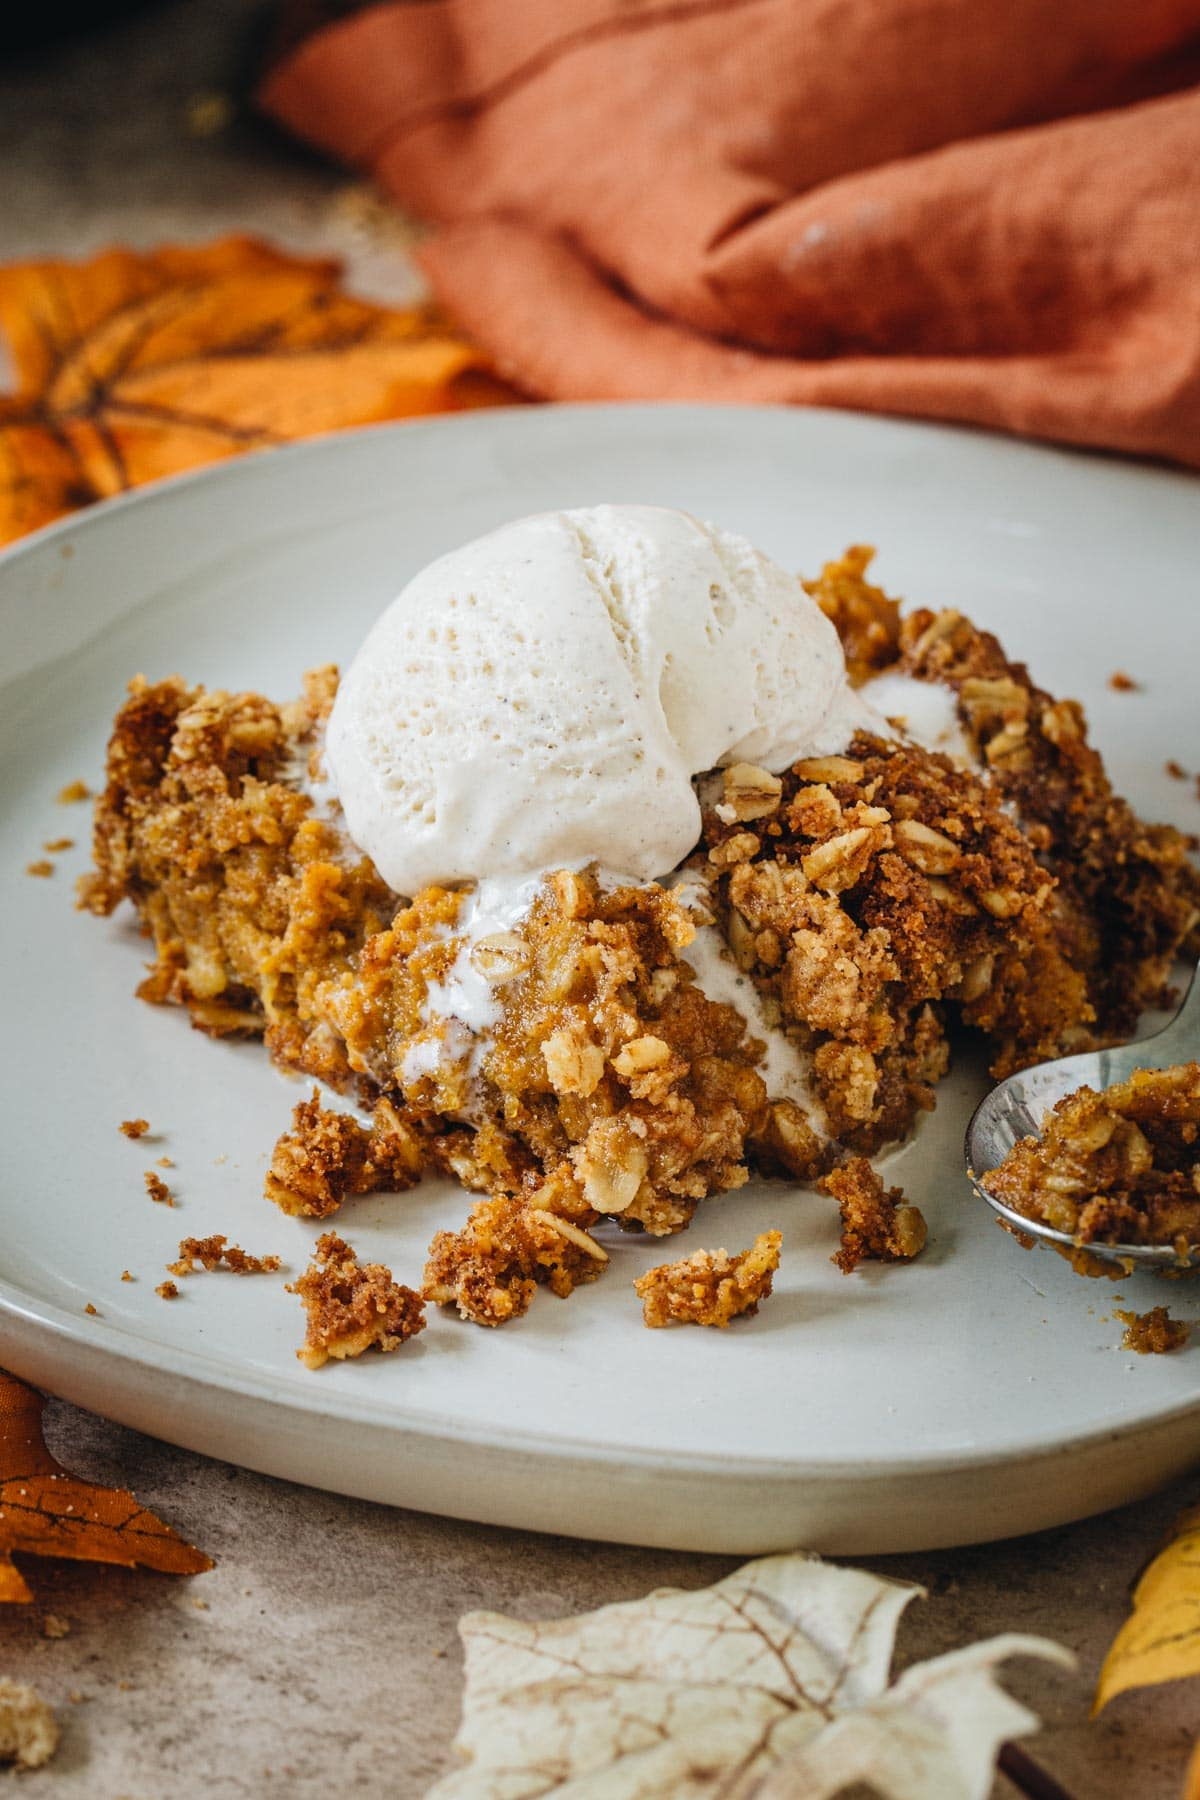 Pumpkin crisp topped with melting vanilla ice cream on a white plate.